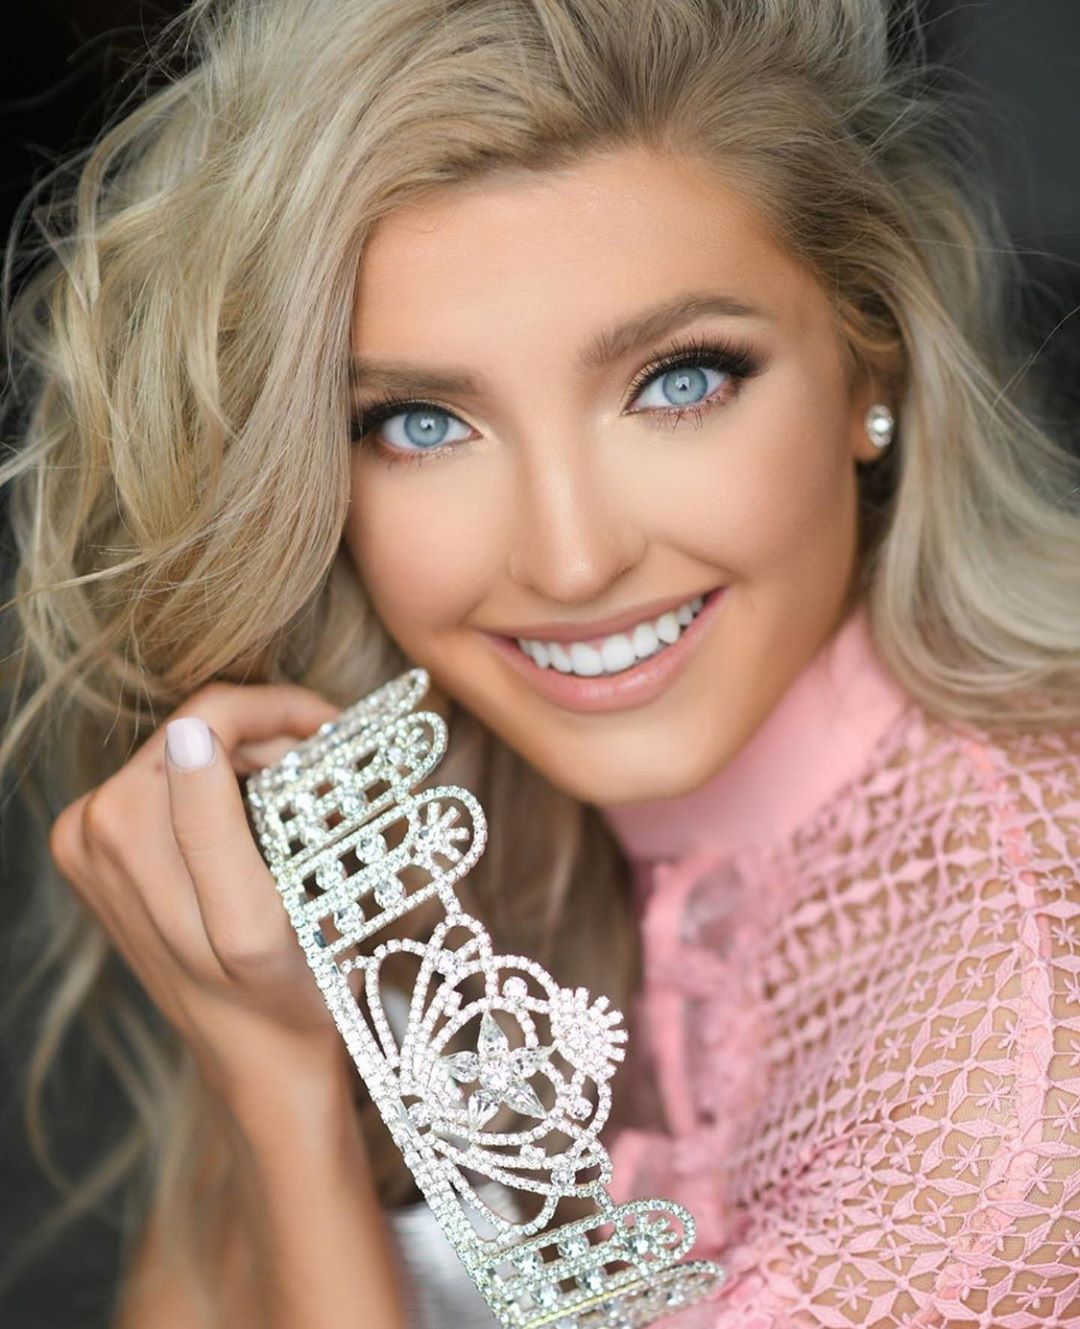 candidatas a miss teen usa 2020. final: 7 nov. preliminary competition a partir pag. 21. - Página 3 55uwbe2f